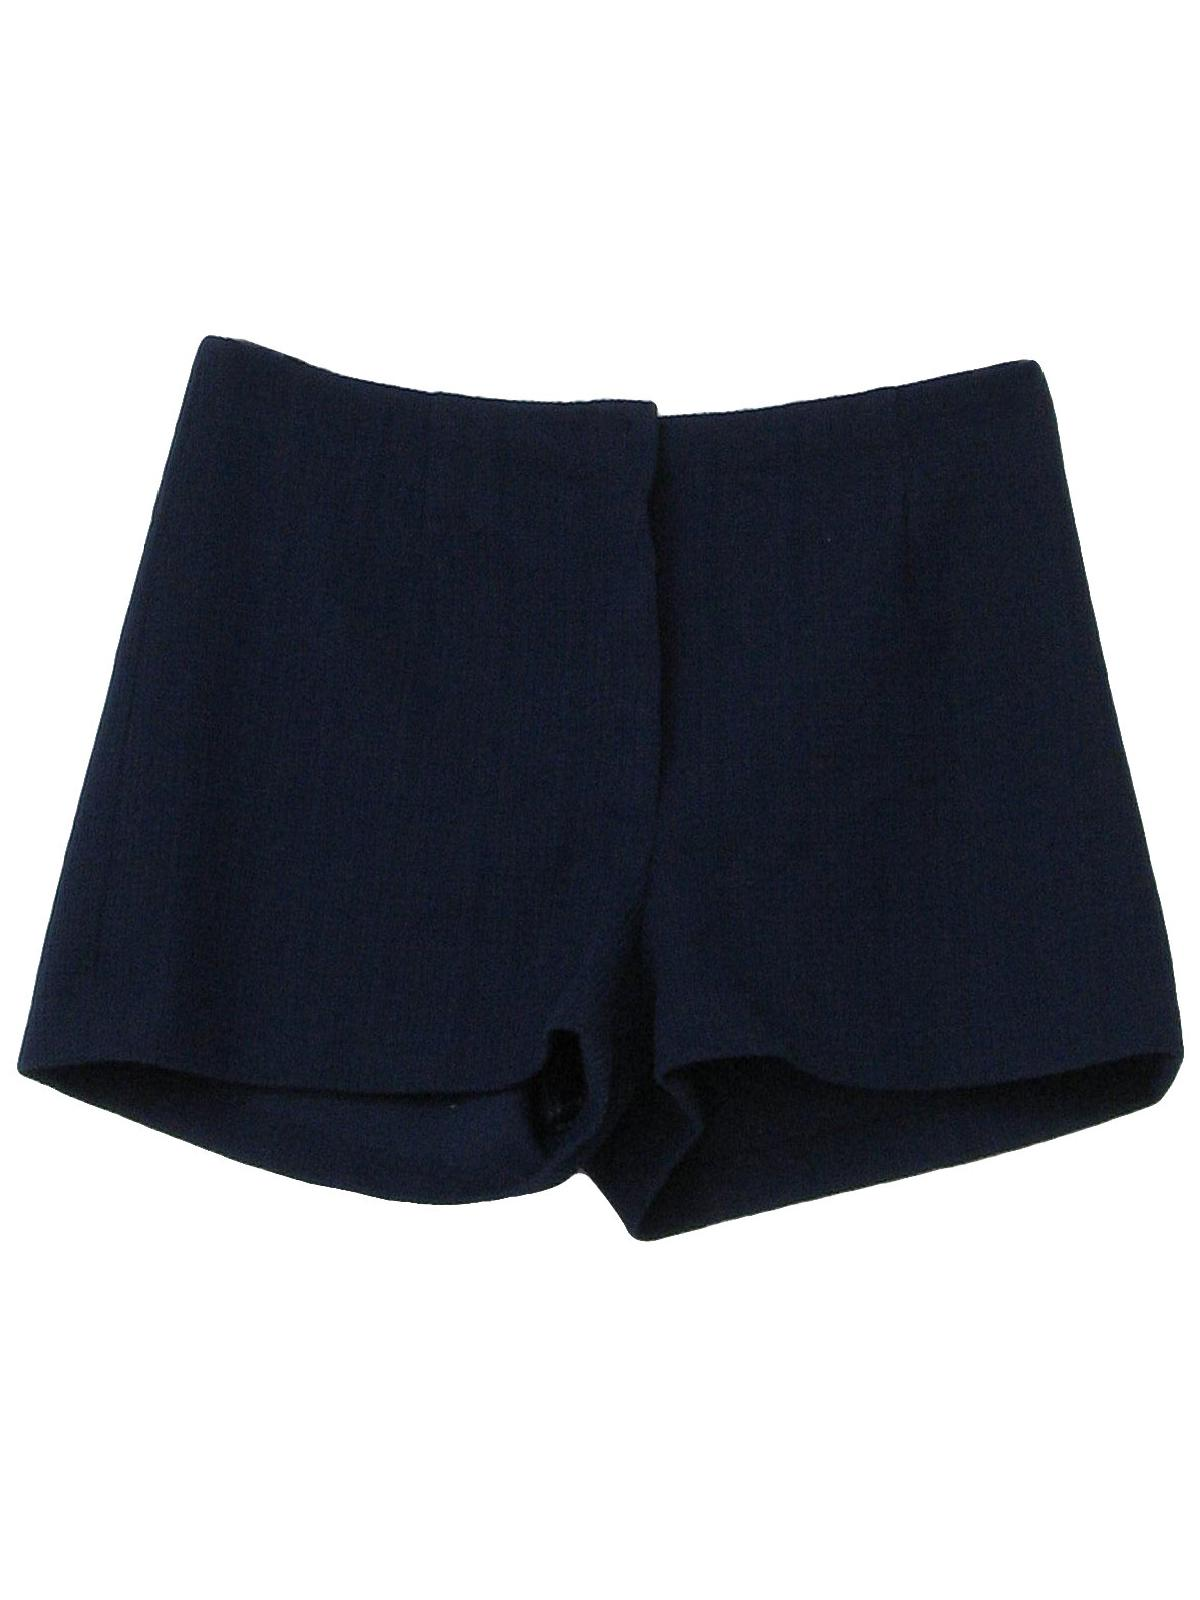 Find navy blue shorts women at ShopStyle. Shop the latest collection of navy blue shorts women from the most popular stores - all in one place.